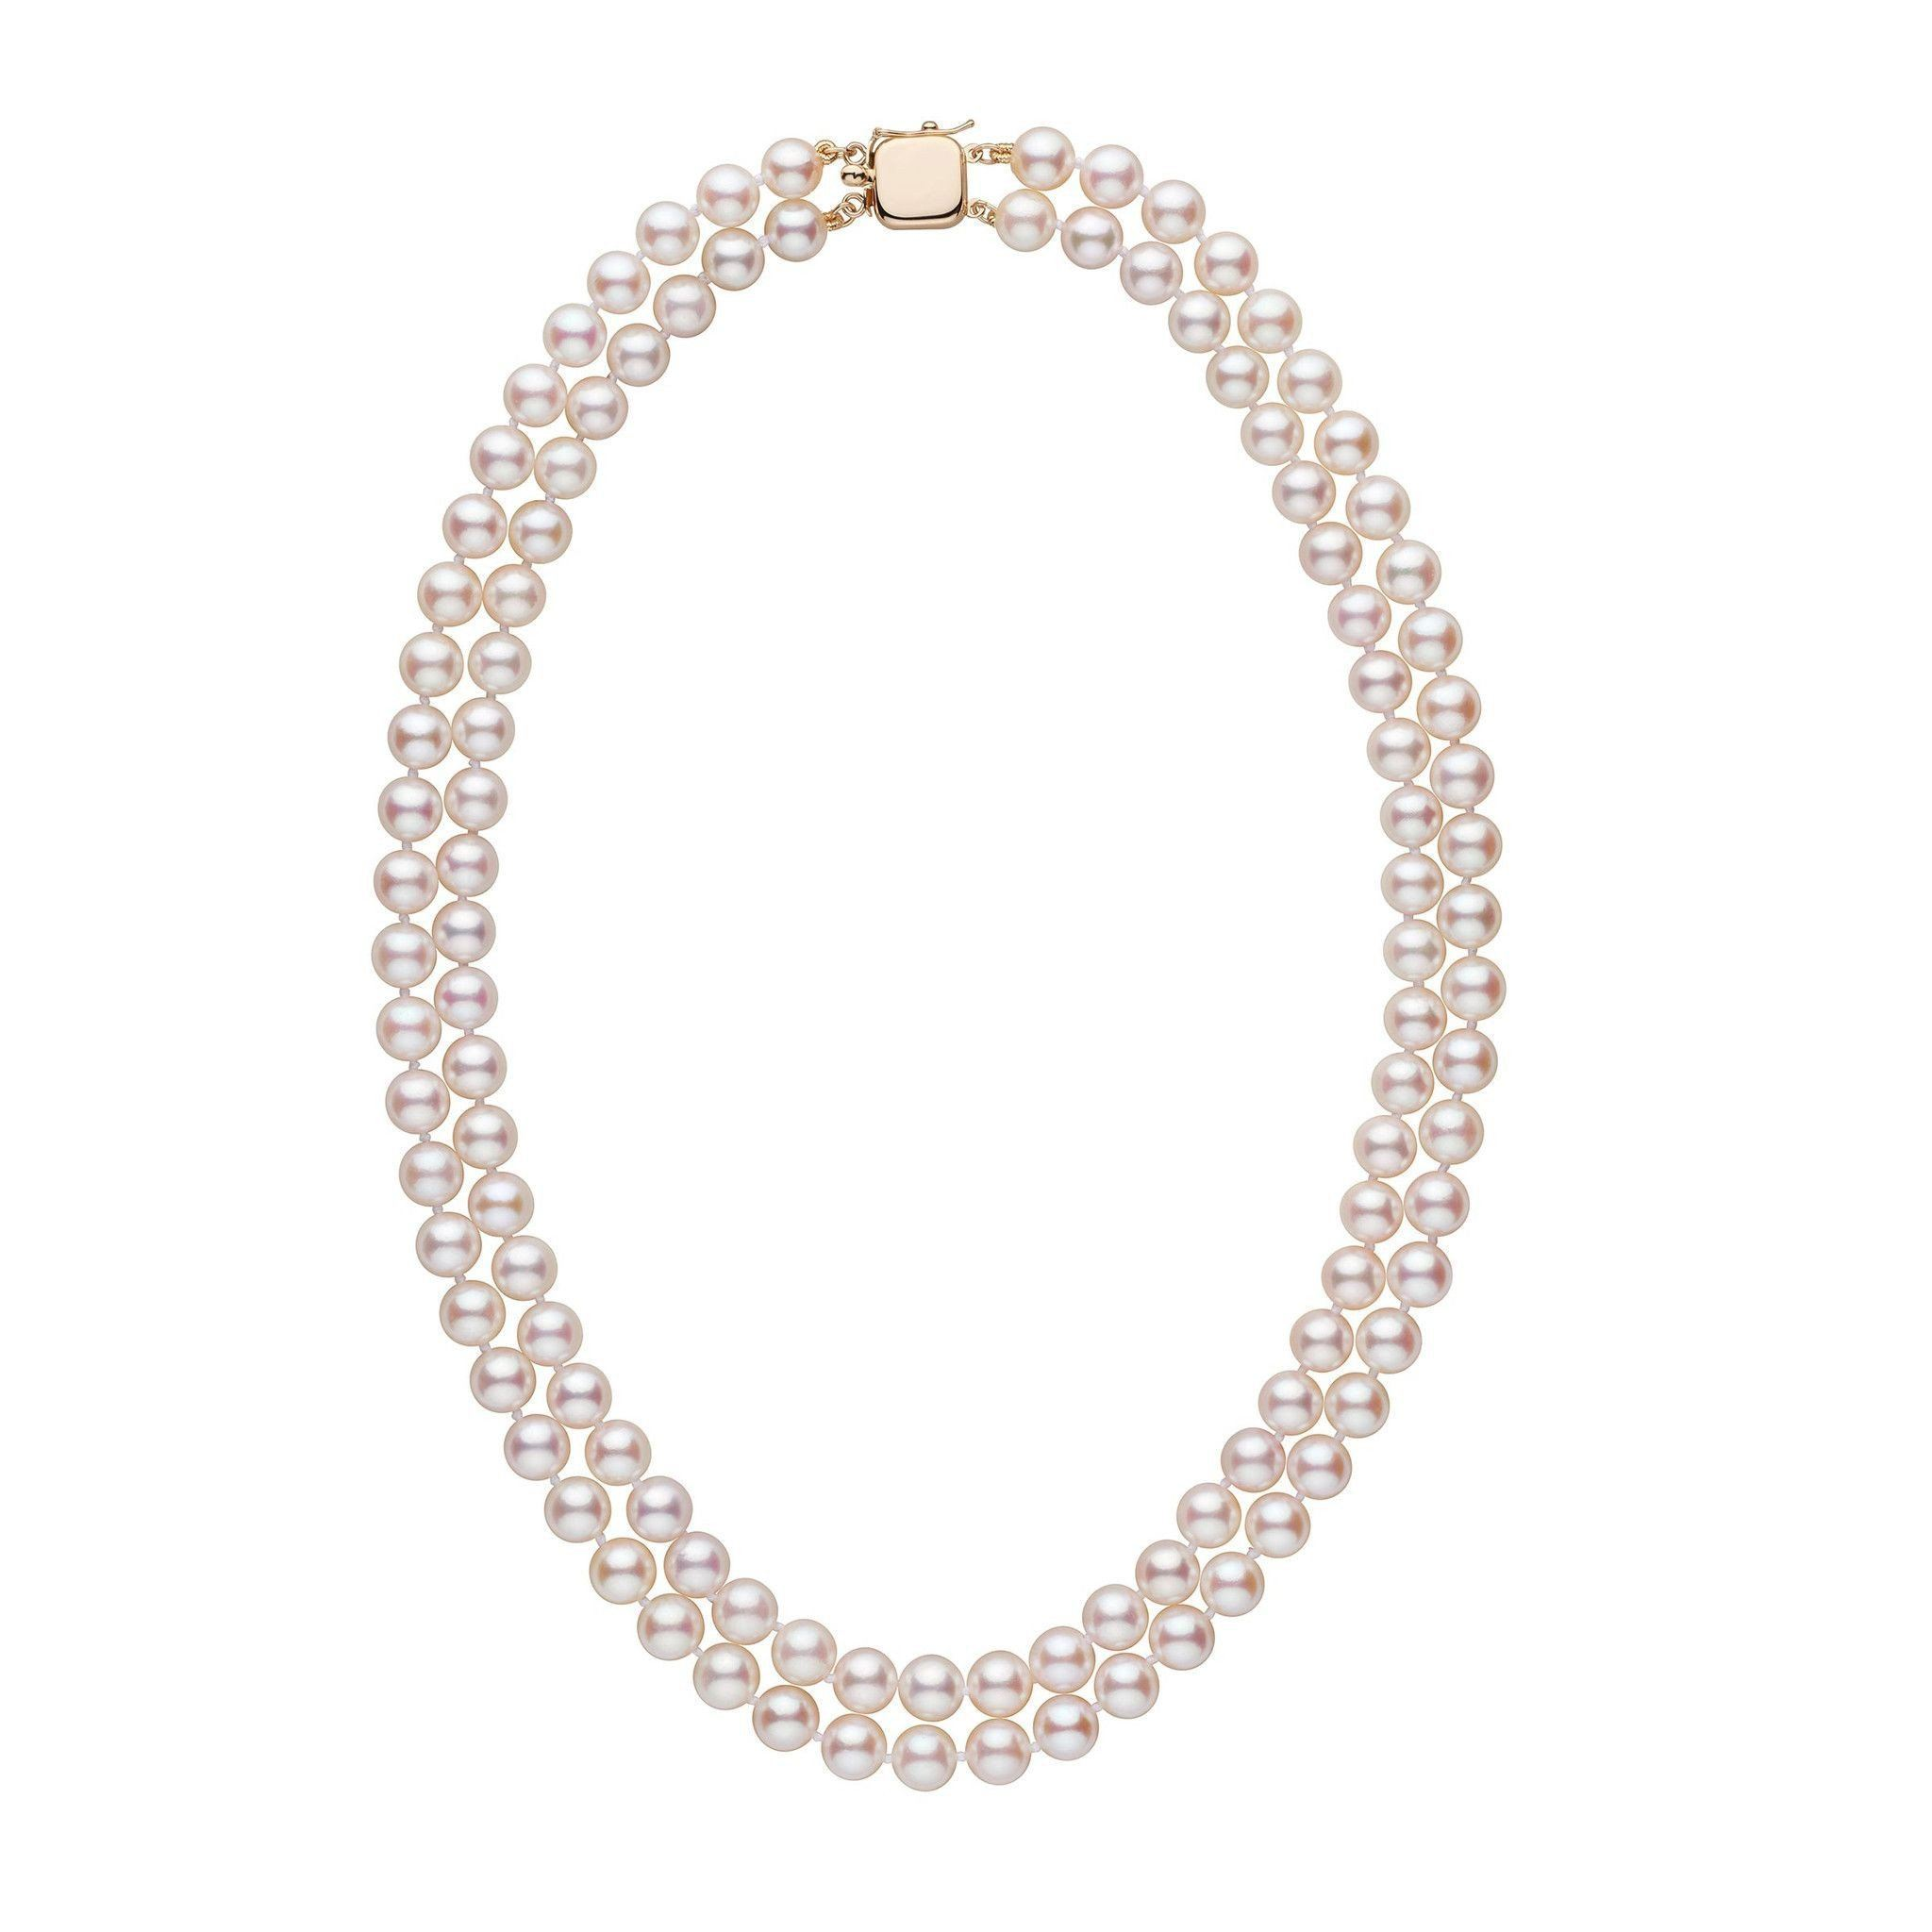 7.0-7.5 mm 18-inch AA+ Double-Strand White Akoya Pearl Necklace